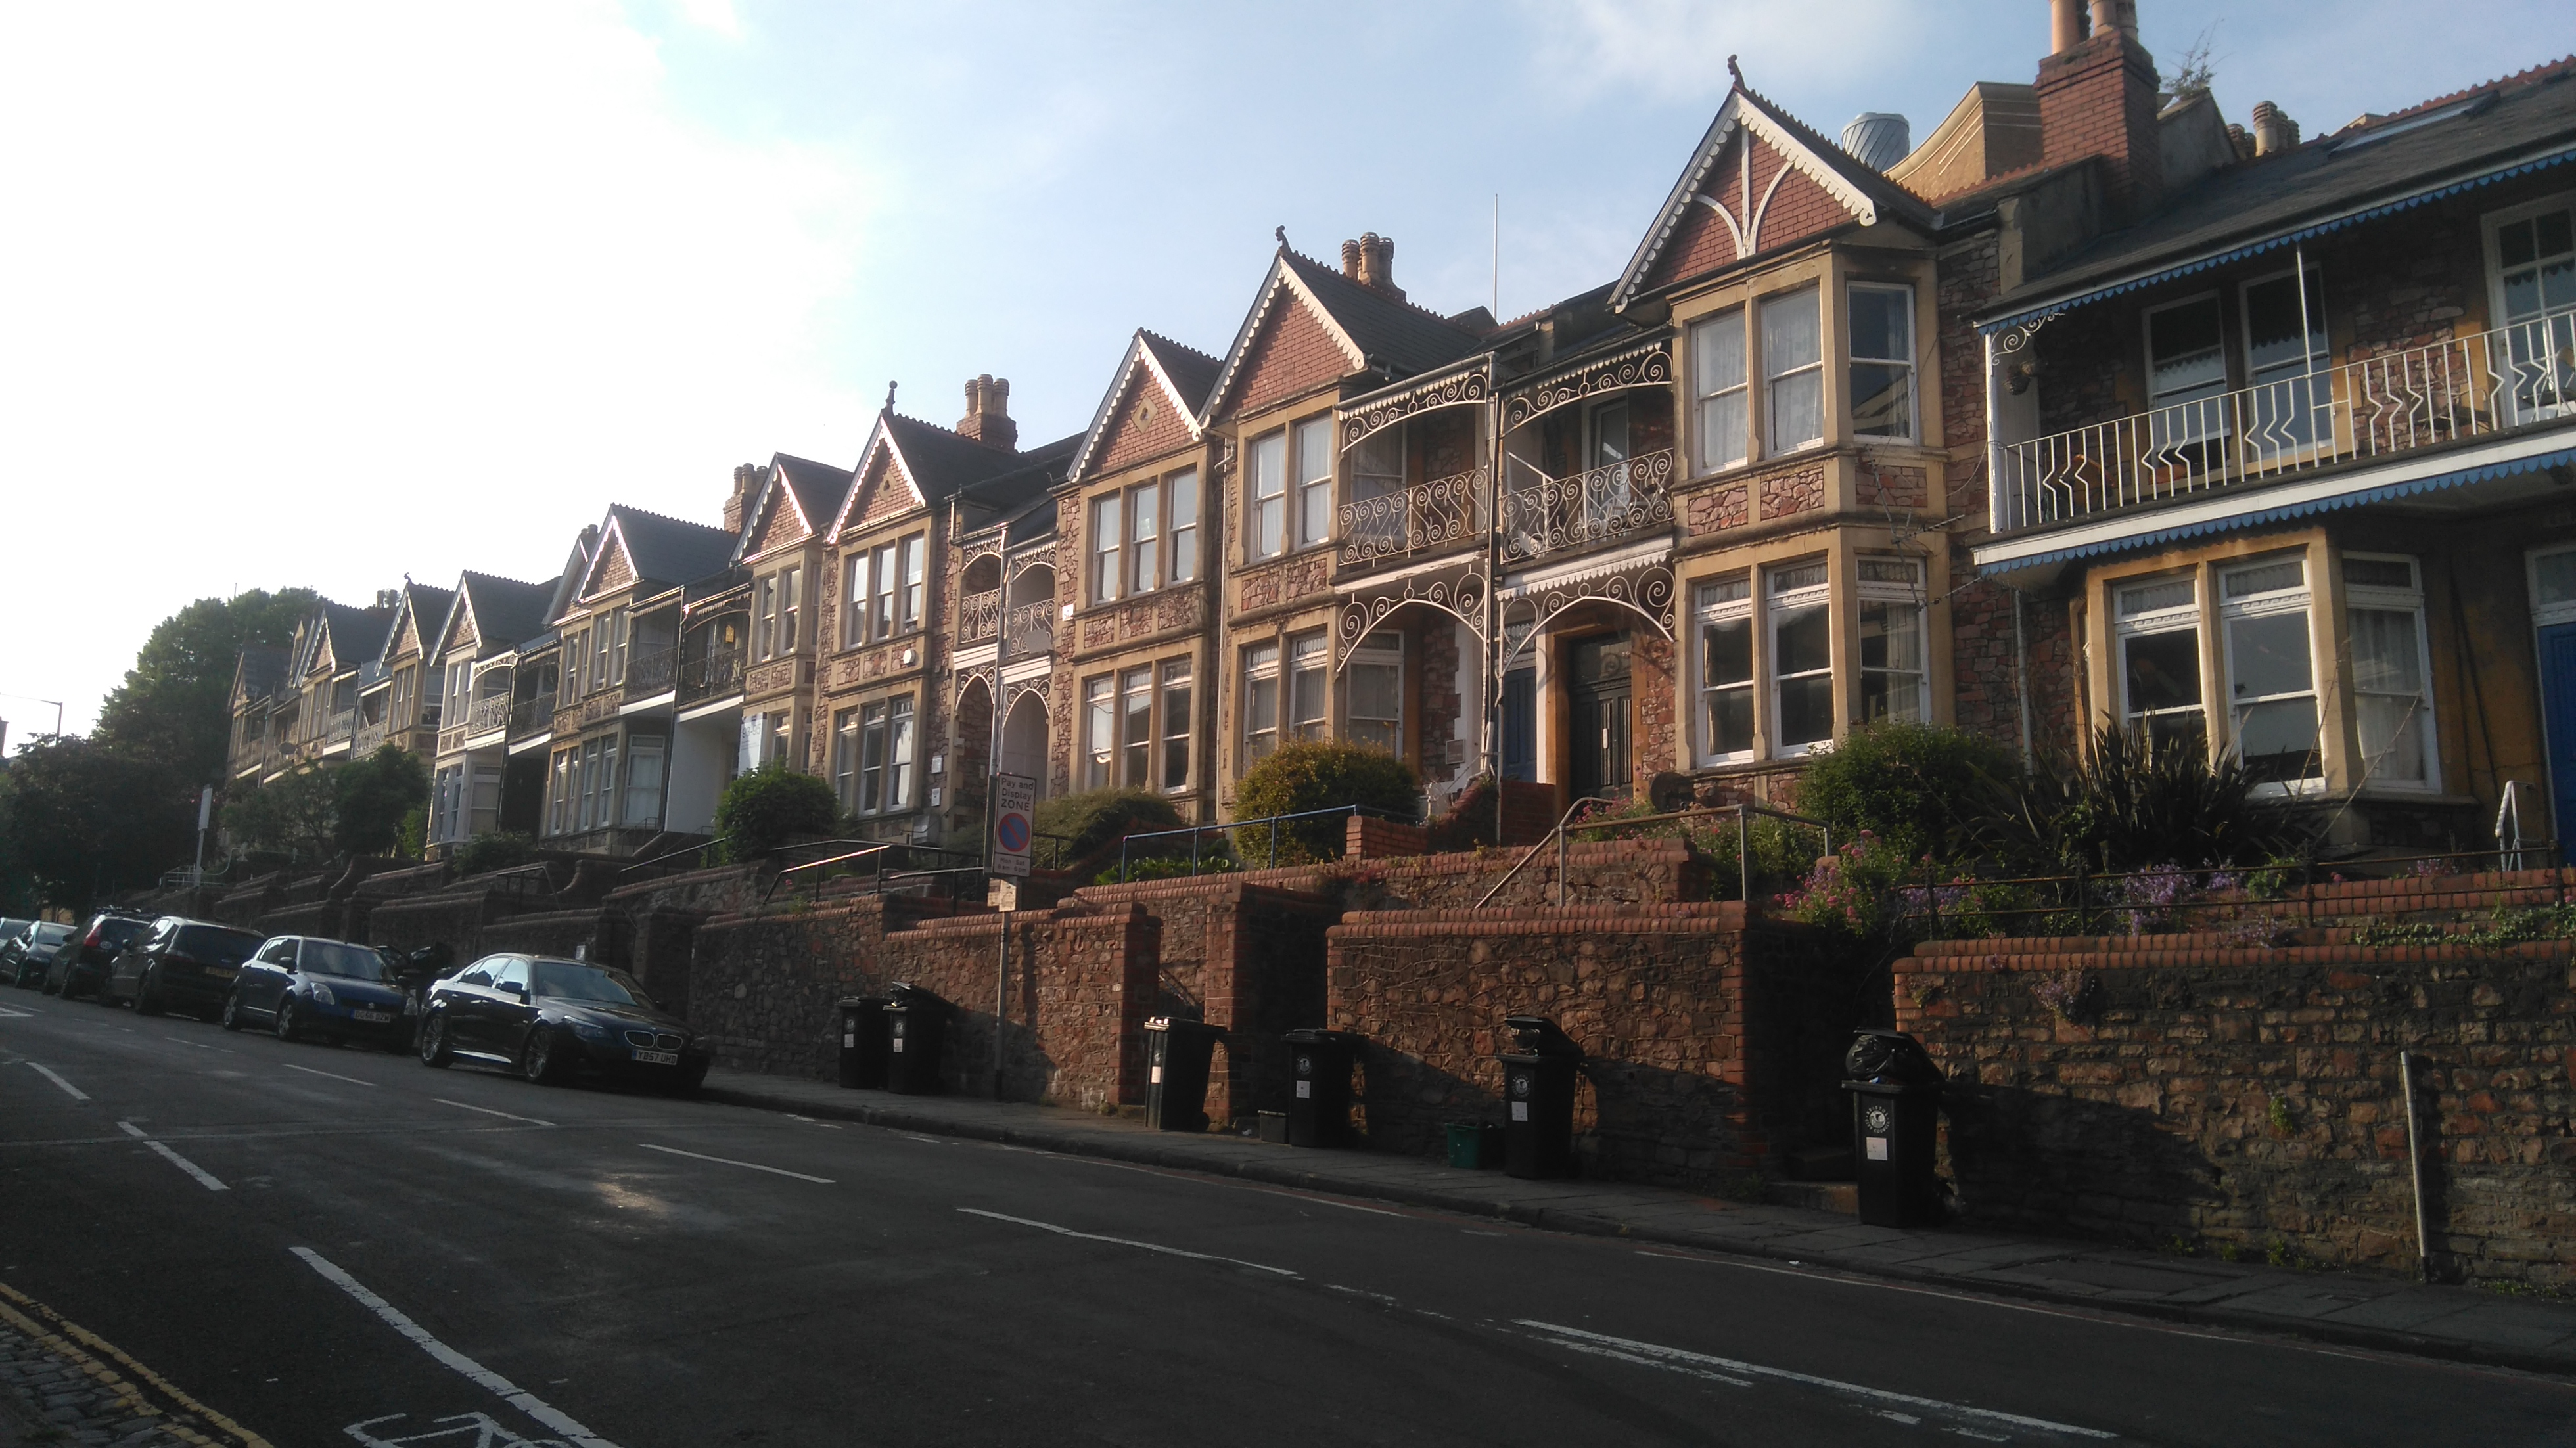 A sloping street with big Victorian stone houses and high garden walls on a sunny evening